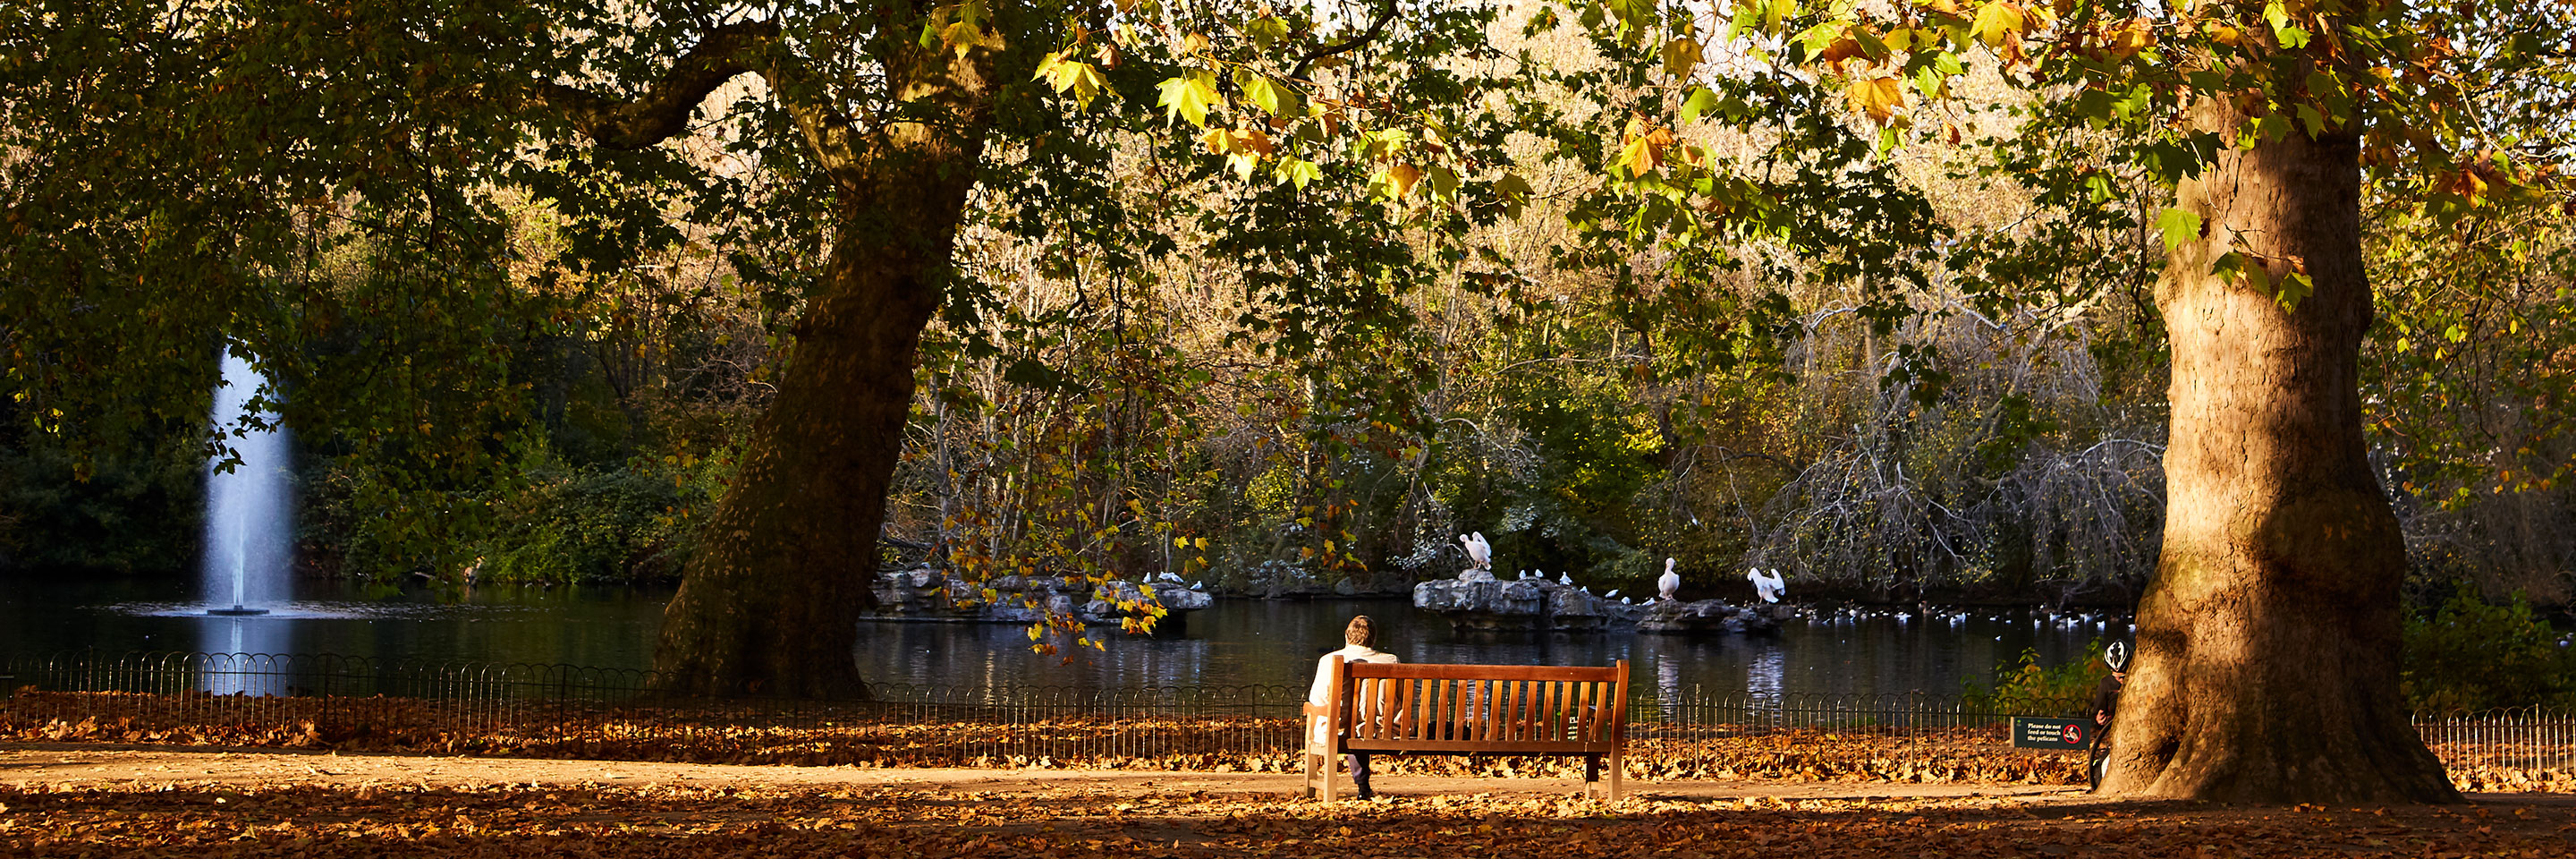 A man sitting on the bench in St. James's Park near the pond